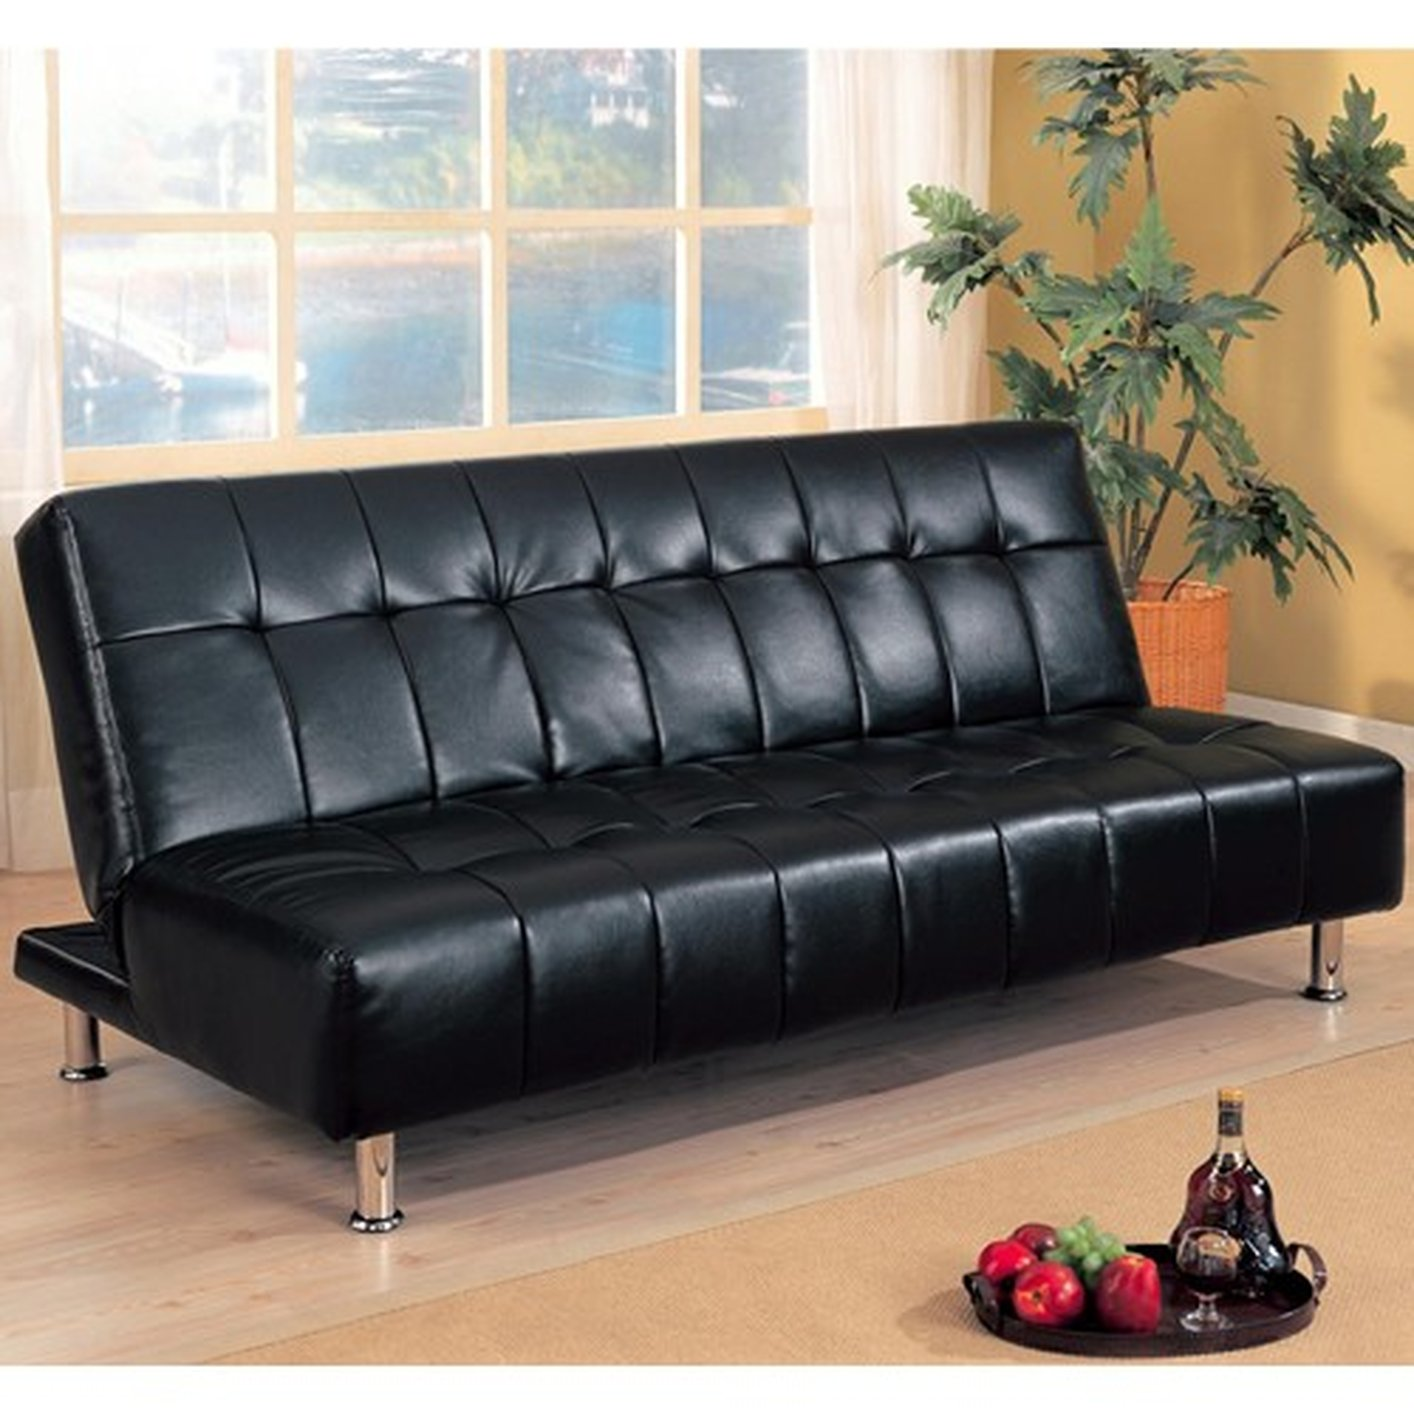 black and white leather sofa bed small chesterfield uk steal a furniture outlet los